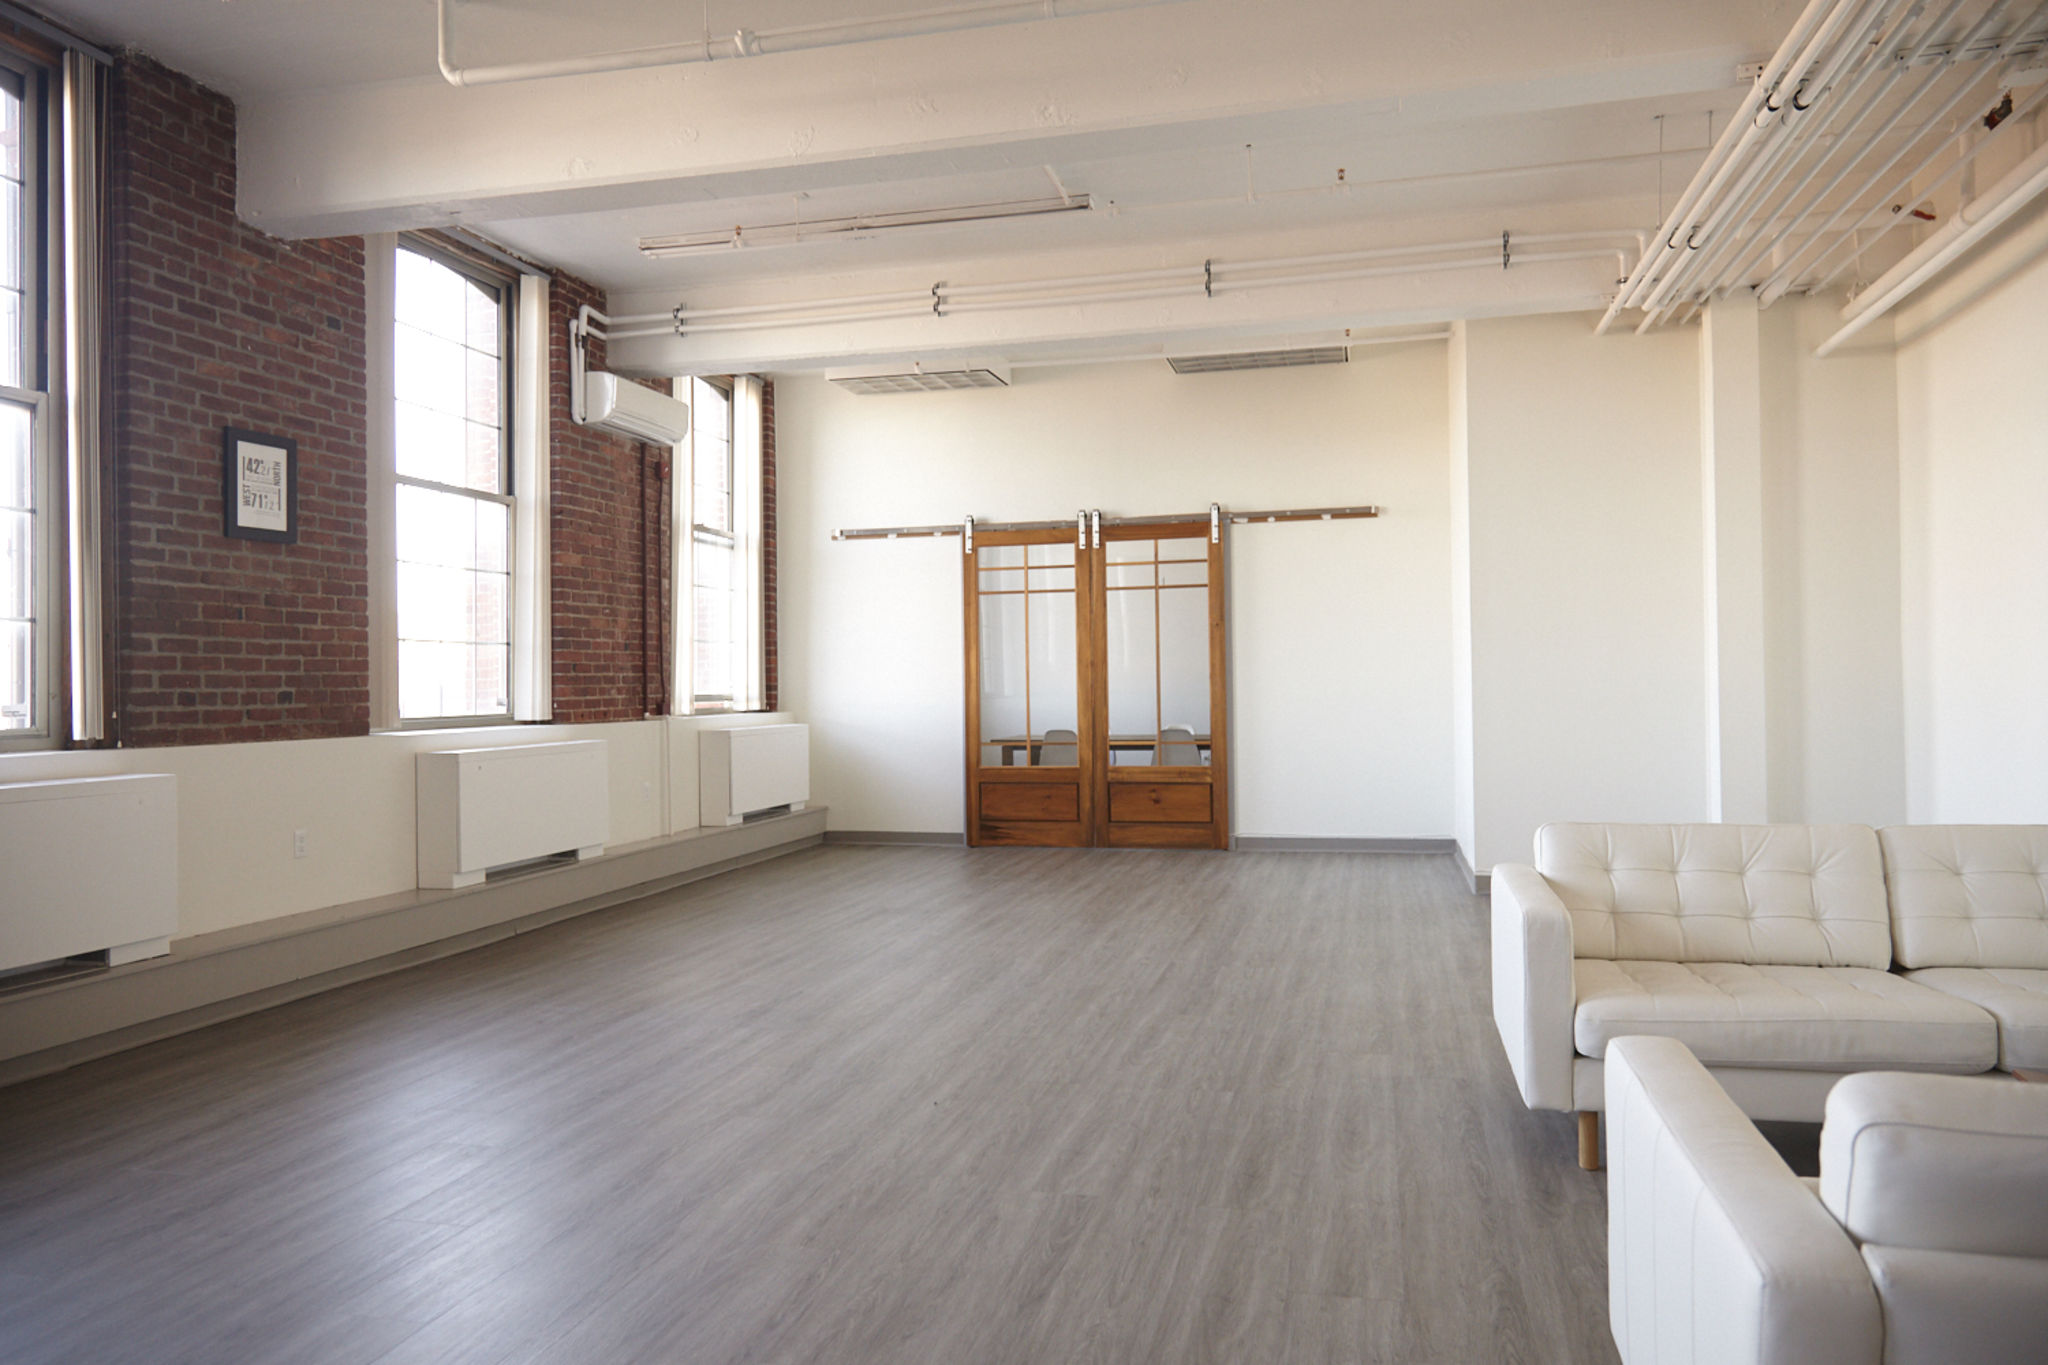 Photo Video Studio With Exposed Brick Wall Newtonville Ma Event Peerspace